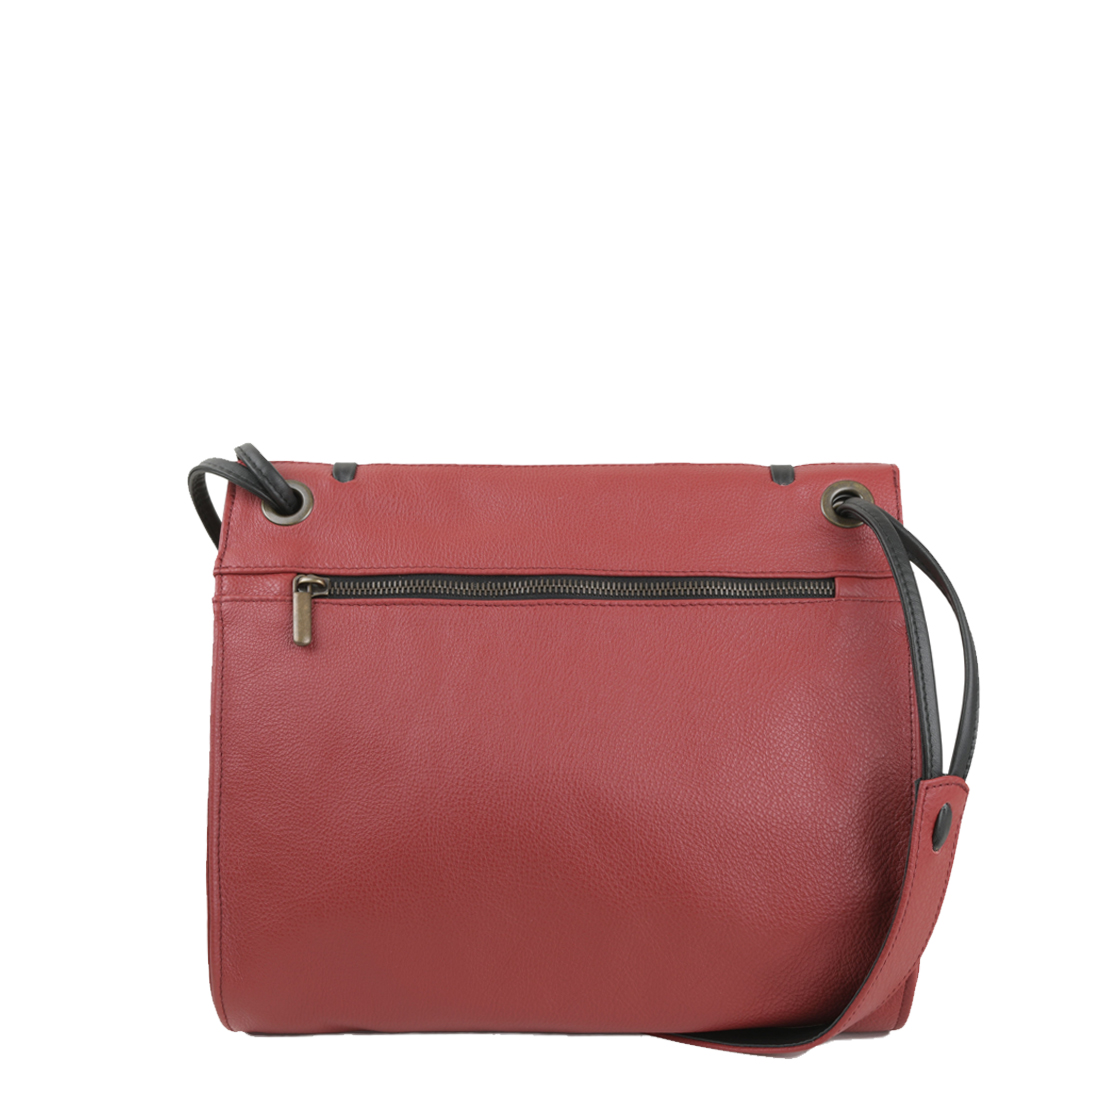 Elsa Red Leather Across Body Bag